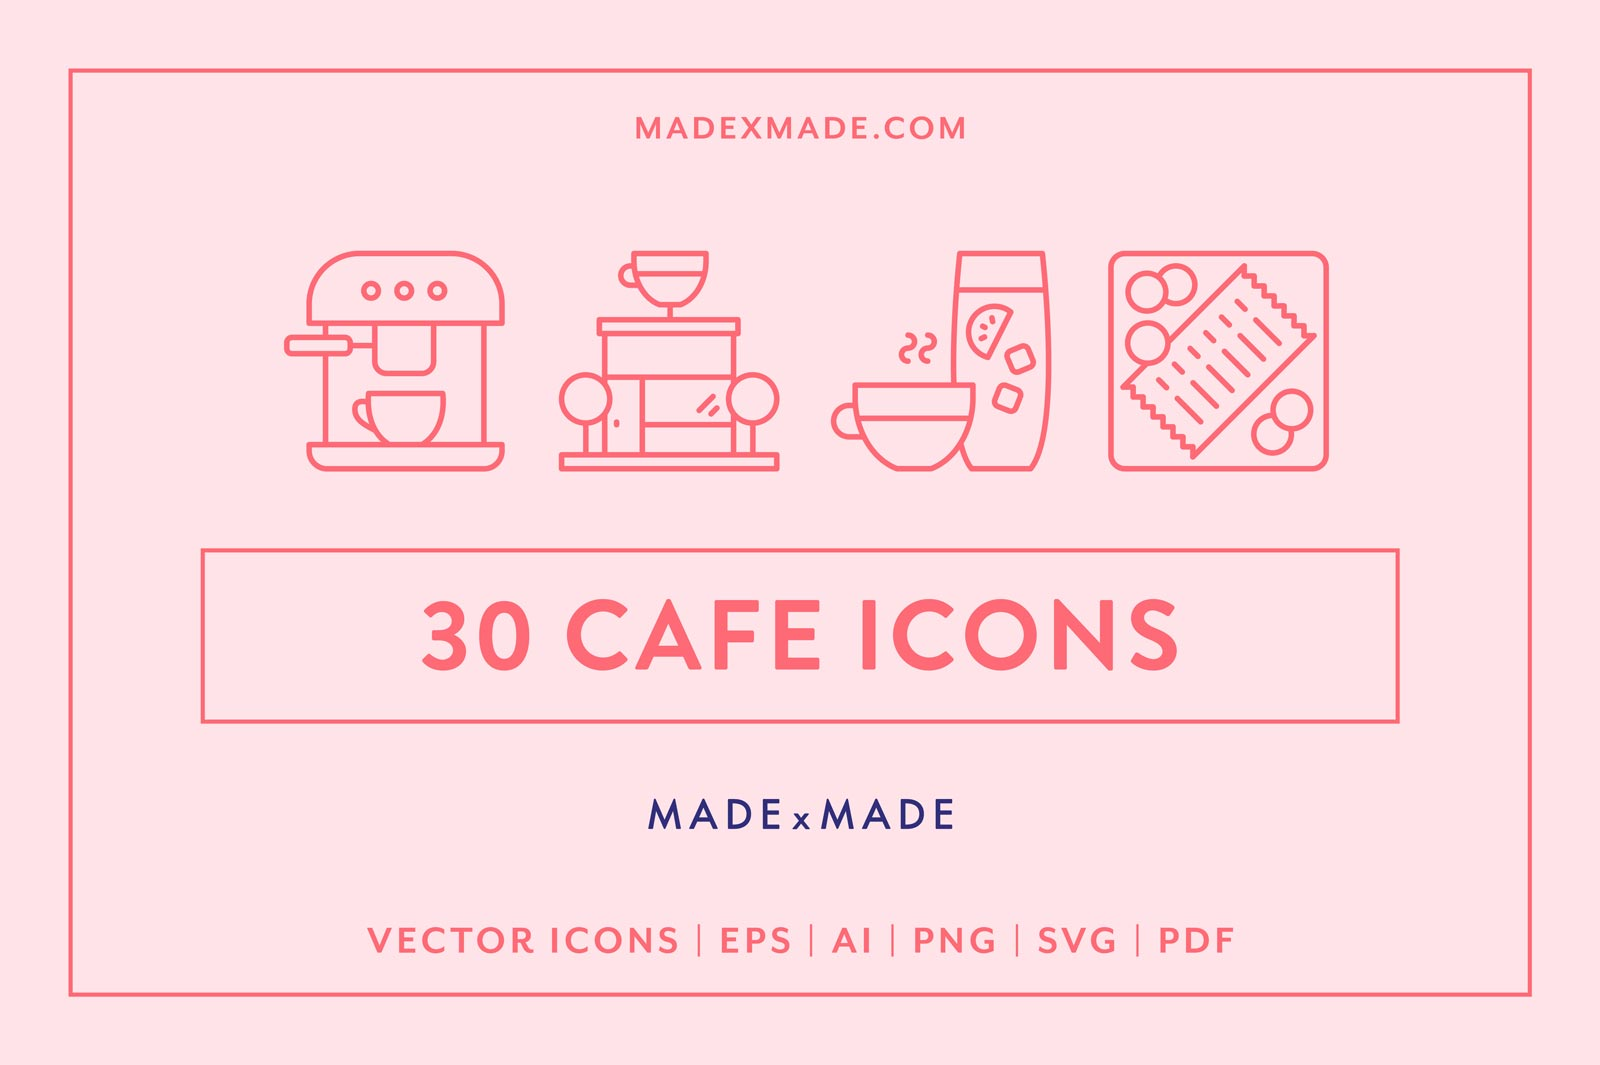 Free Download: 30 Café Icons